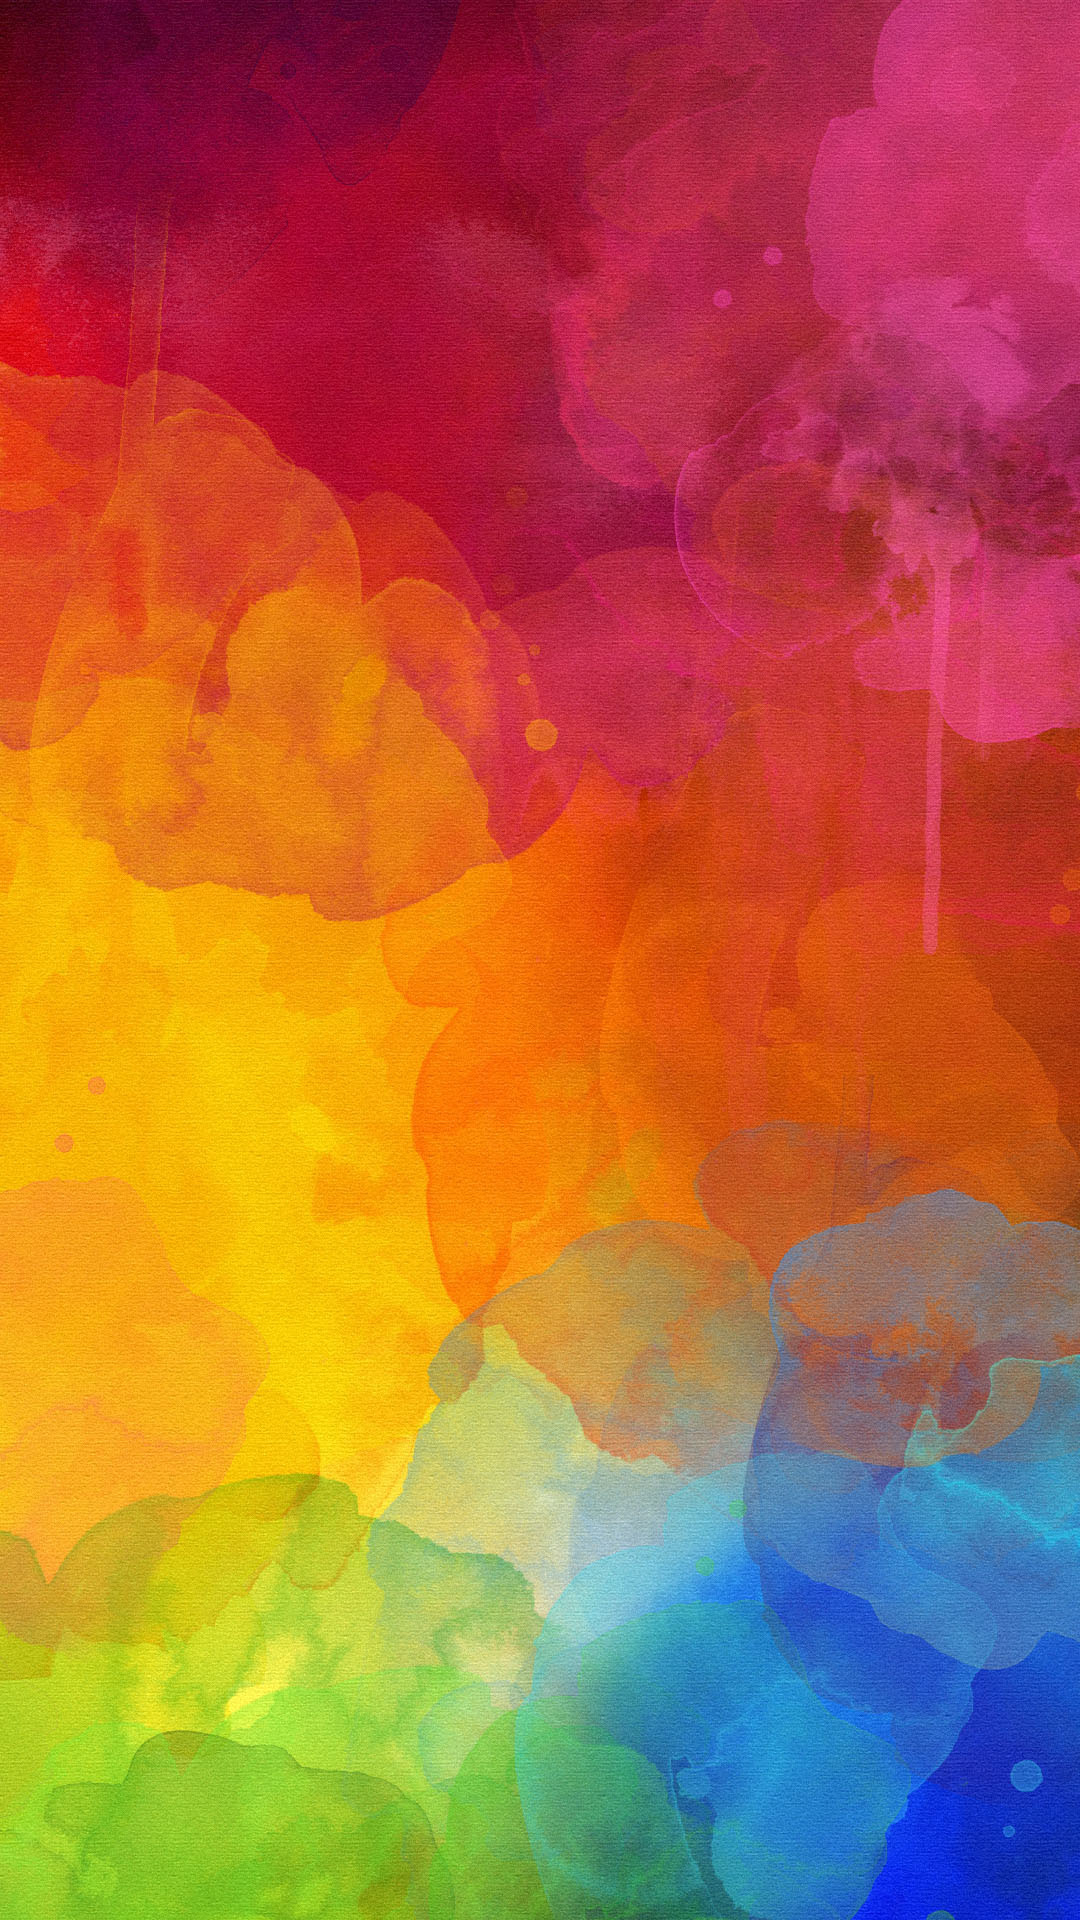 Colourful-Watercolour-Mark-Color-of-rainbow-in-abstract-wallpaper-wpc5803597